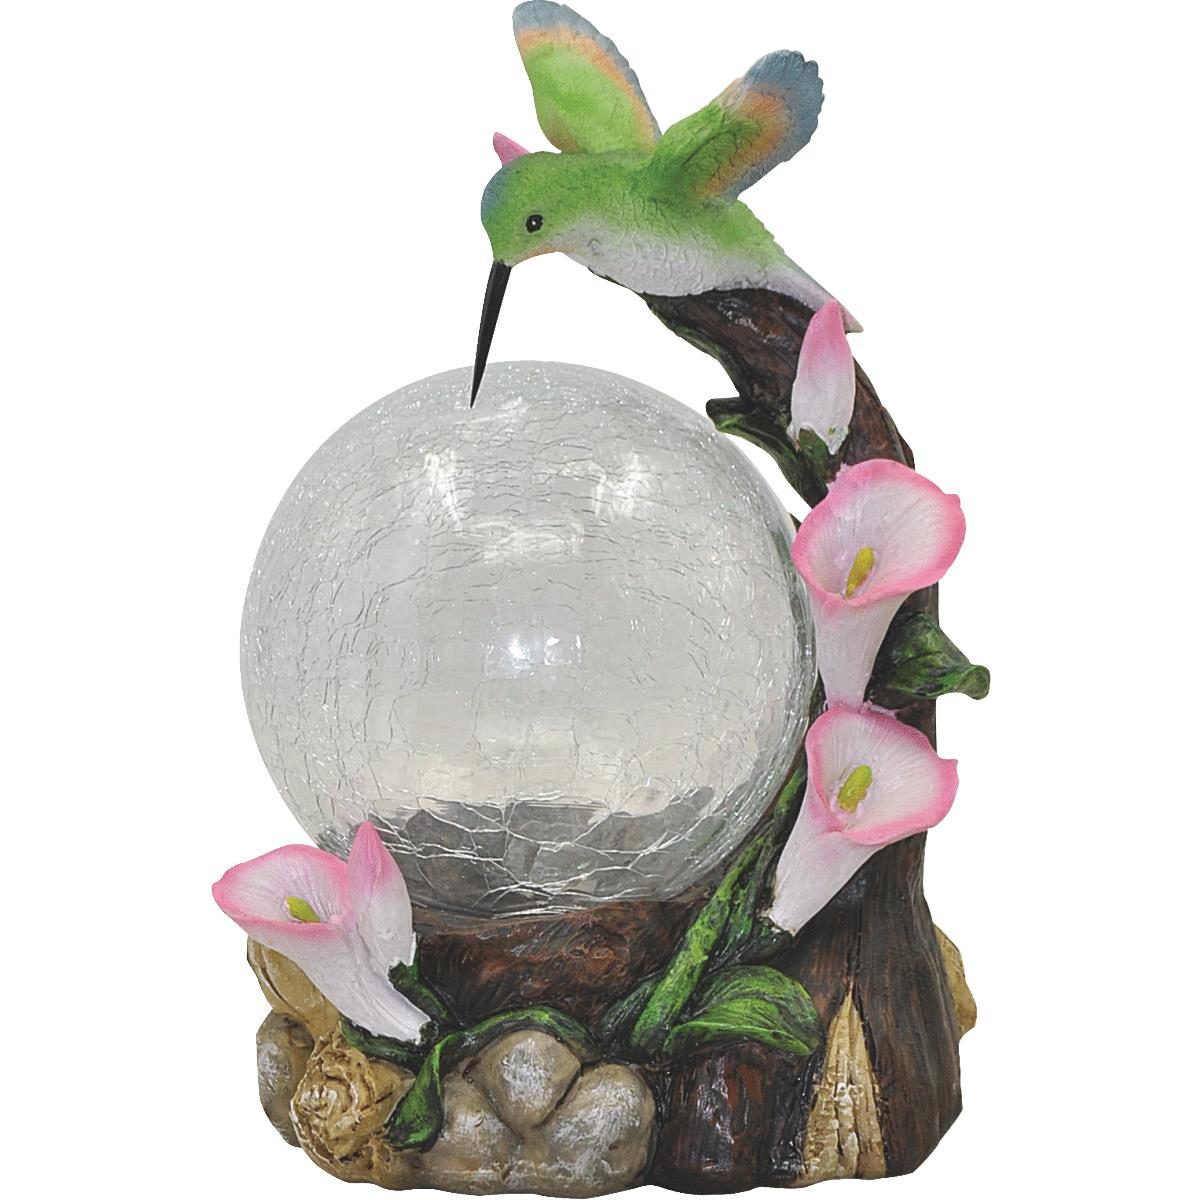 Moonrays 92365 Hummingbird Globe Garden Statue with Solar Powered Color-Changing LED Light, Multicolor by Woods Ind.